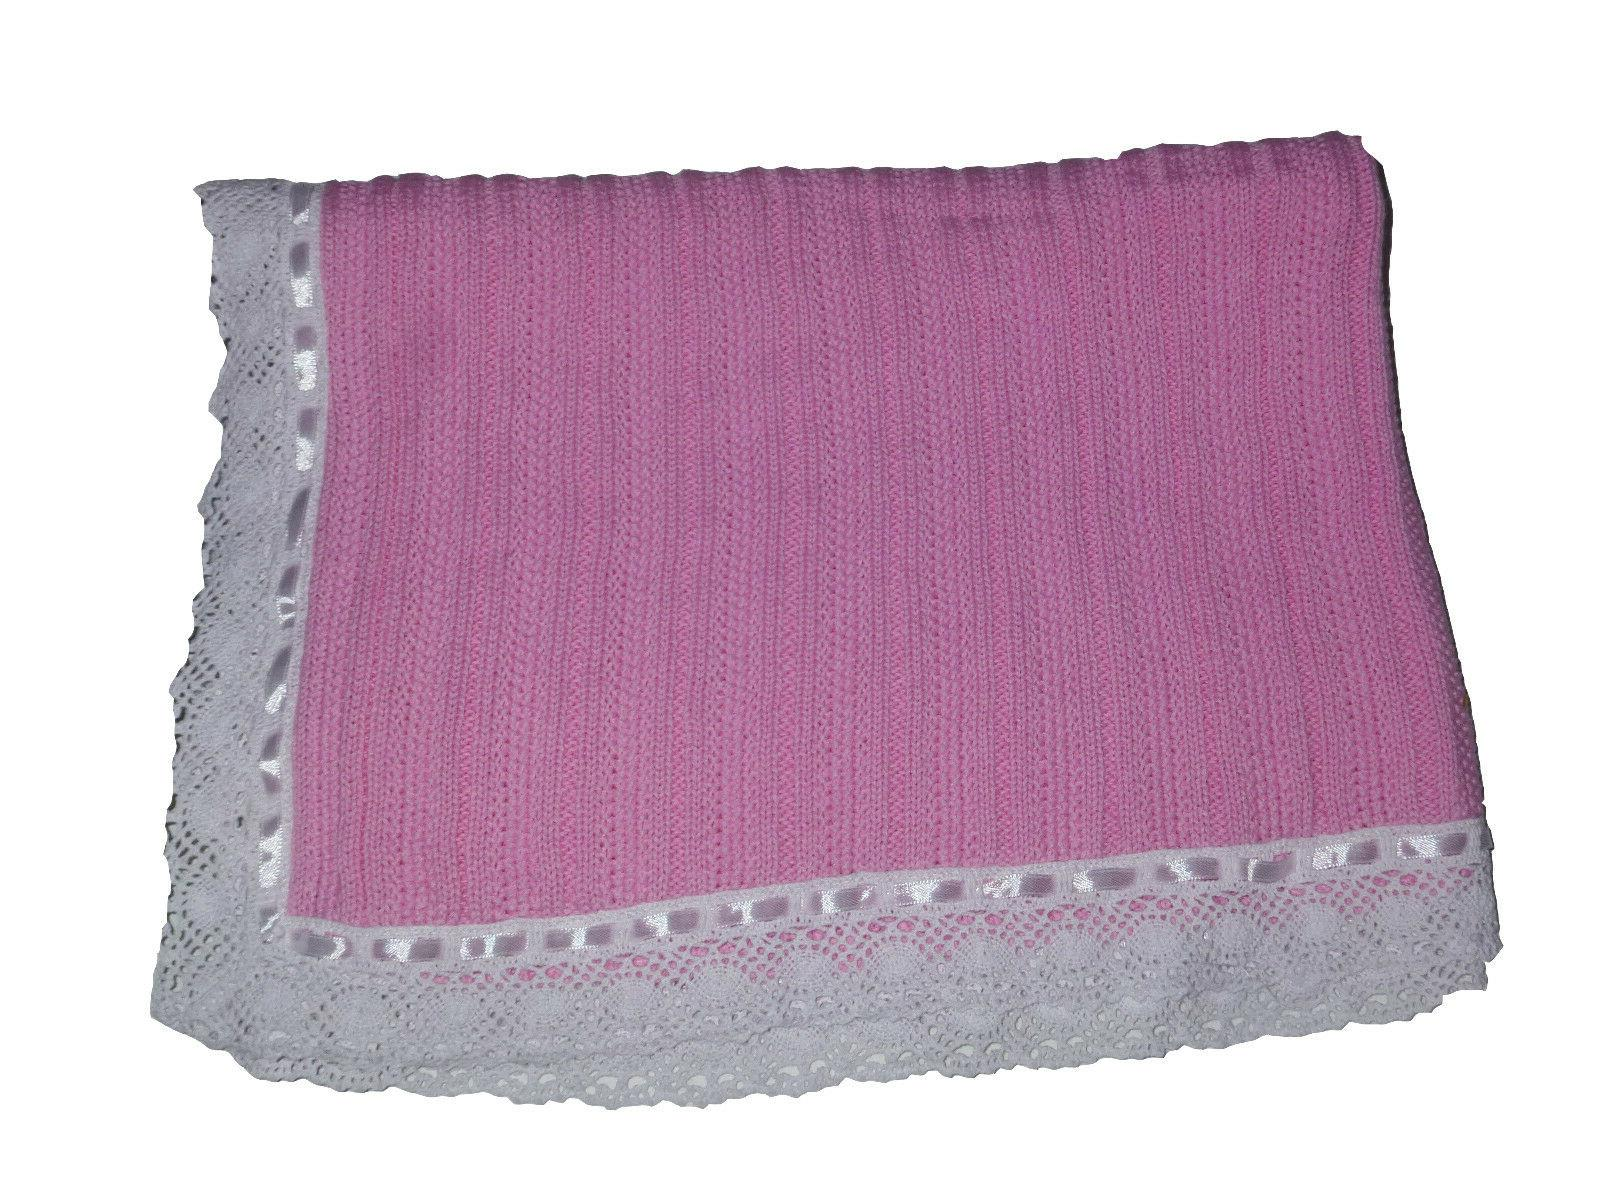 knit baby blanket pink w white lace